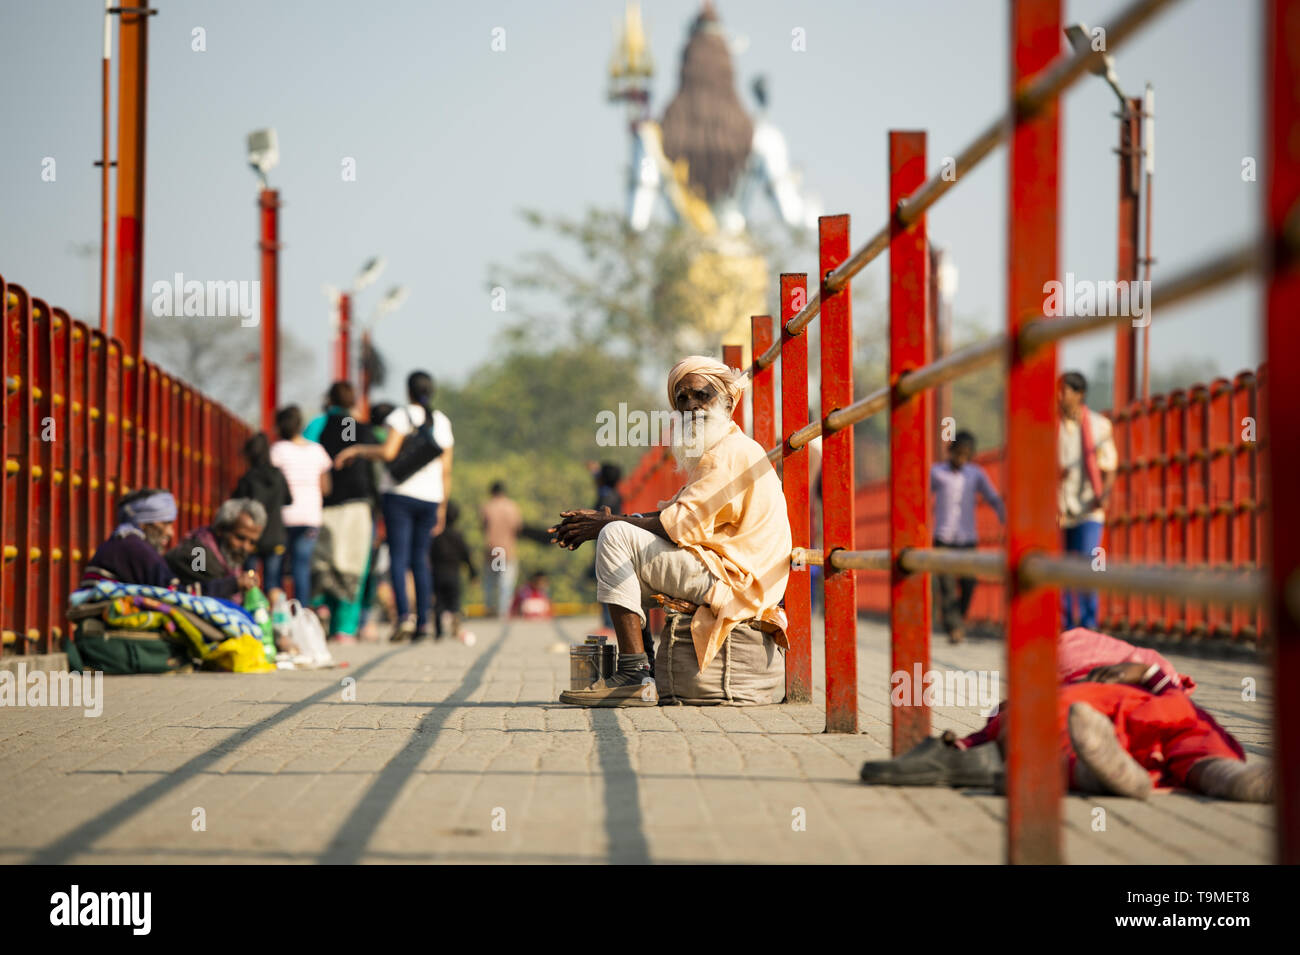 HARIDWAR - INDIA - 31 DECEMBER 2017. A poor Sadhu is asking for money in Haridwar, India. Blurred of Lord Shiva in the background. A Sadhu is a religi - Stock Image